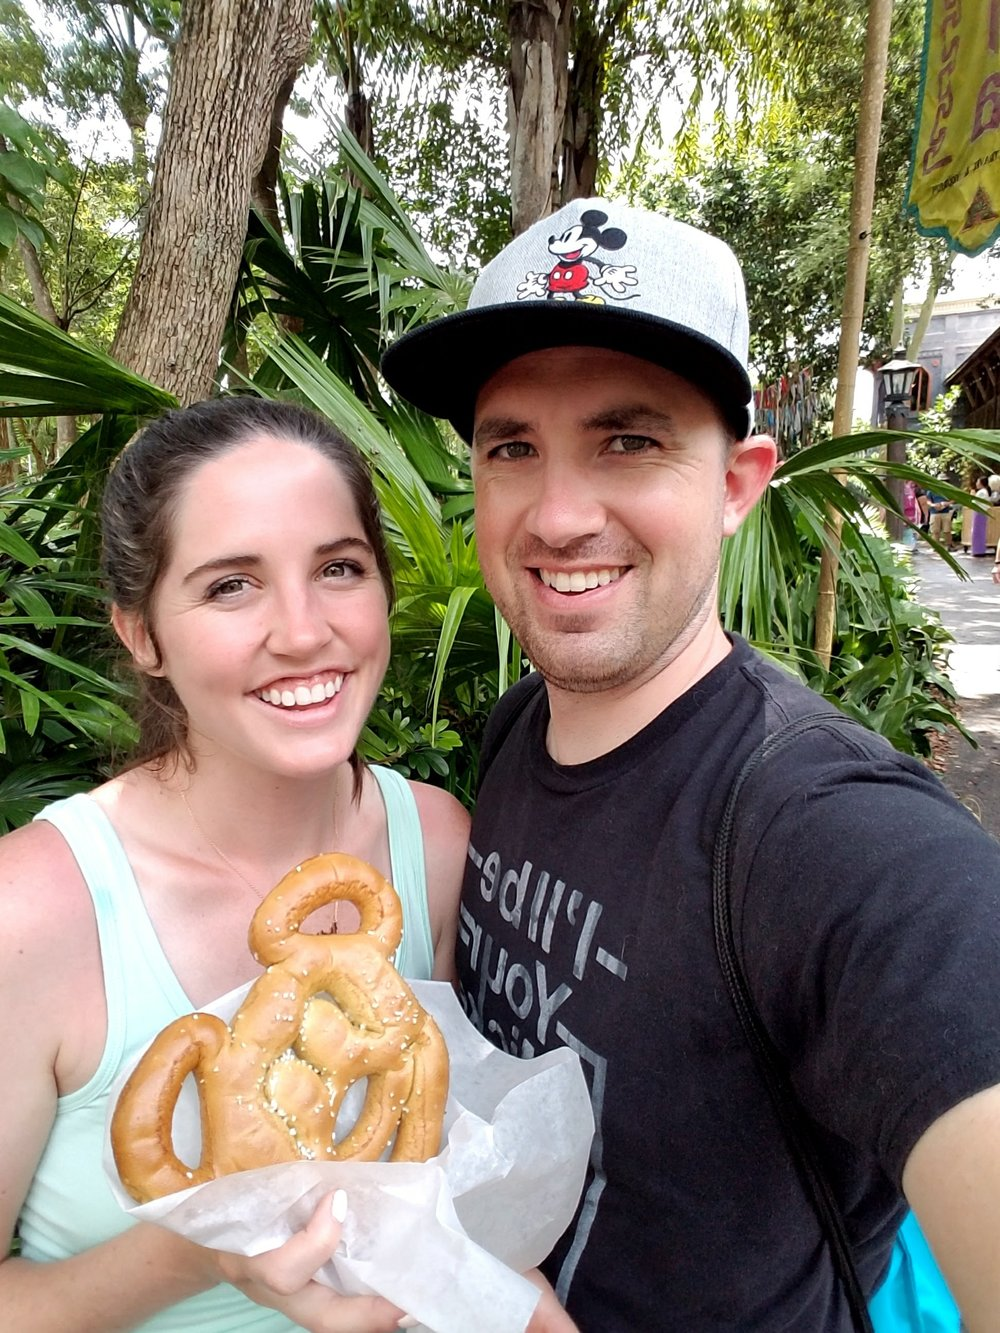 Mickey soft pretzels are honestly so much better than any other soft pretzel. They can be found at most pretzel carts in every park!